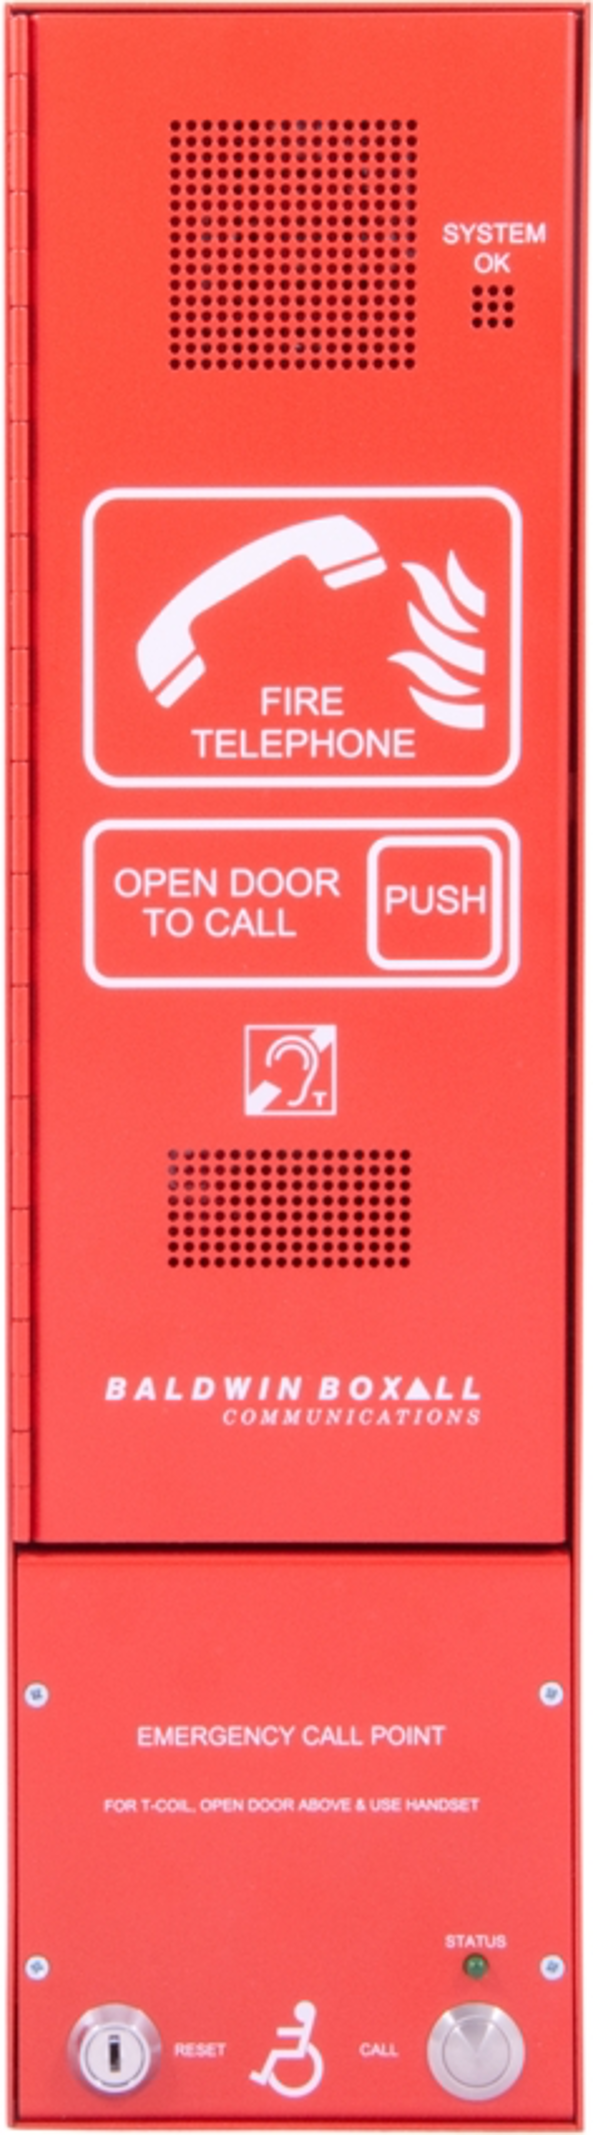 Baldwin Boxall OmniCare BVOCC Combined Type-A & Type B-Outstation Disabled Refuge & Fire Telephone Push Door Red